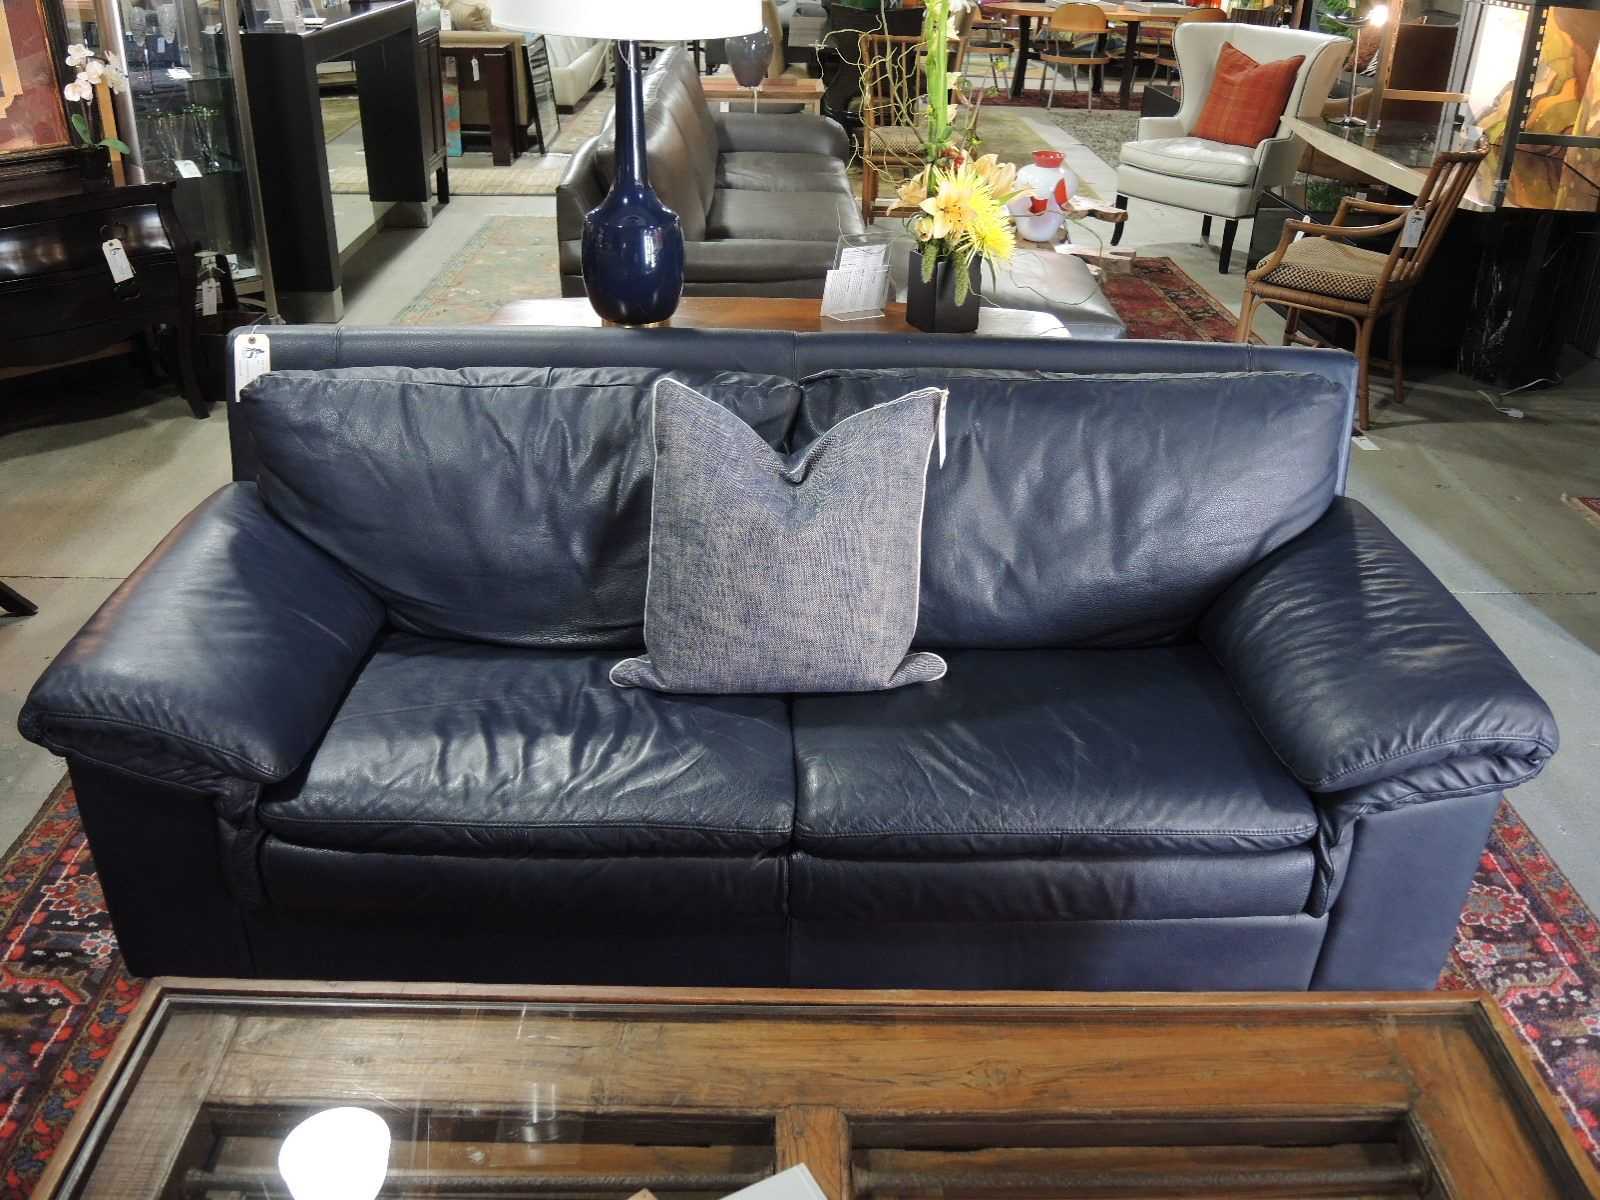 Nice Navy Leather Sofa Set Great Navy Leather Sofa Set 87 About Remodel Sofas And Couches Ideas W Blue Leather Sofa Blue Leather Couch Navy Blue Leather Sofa